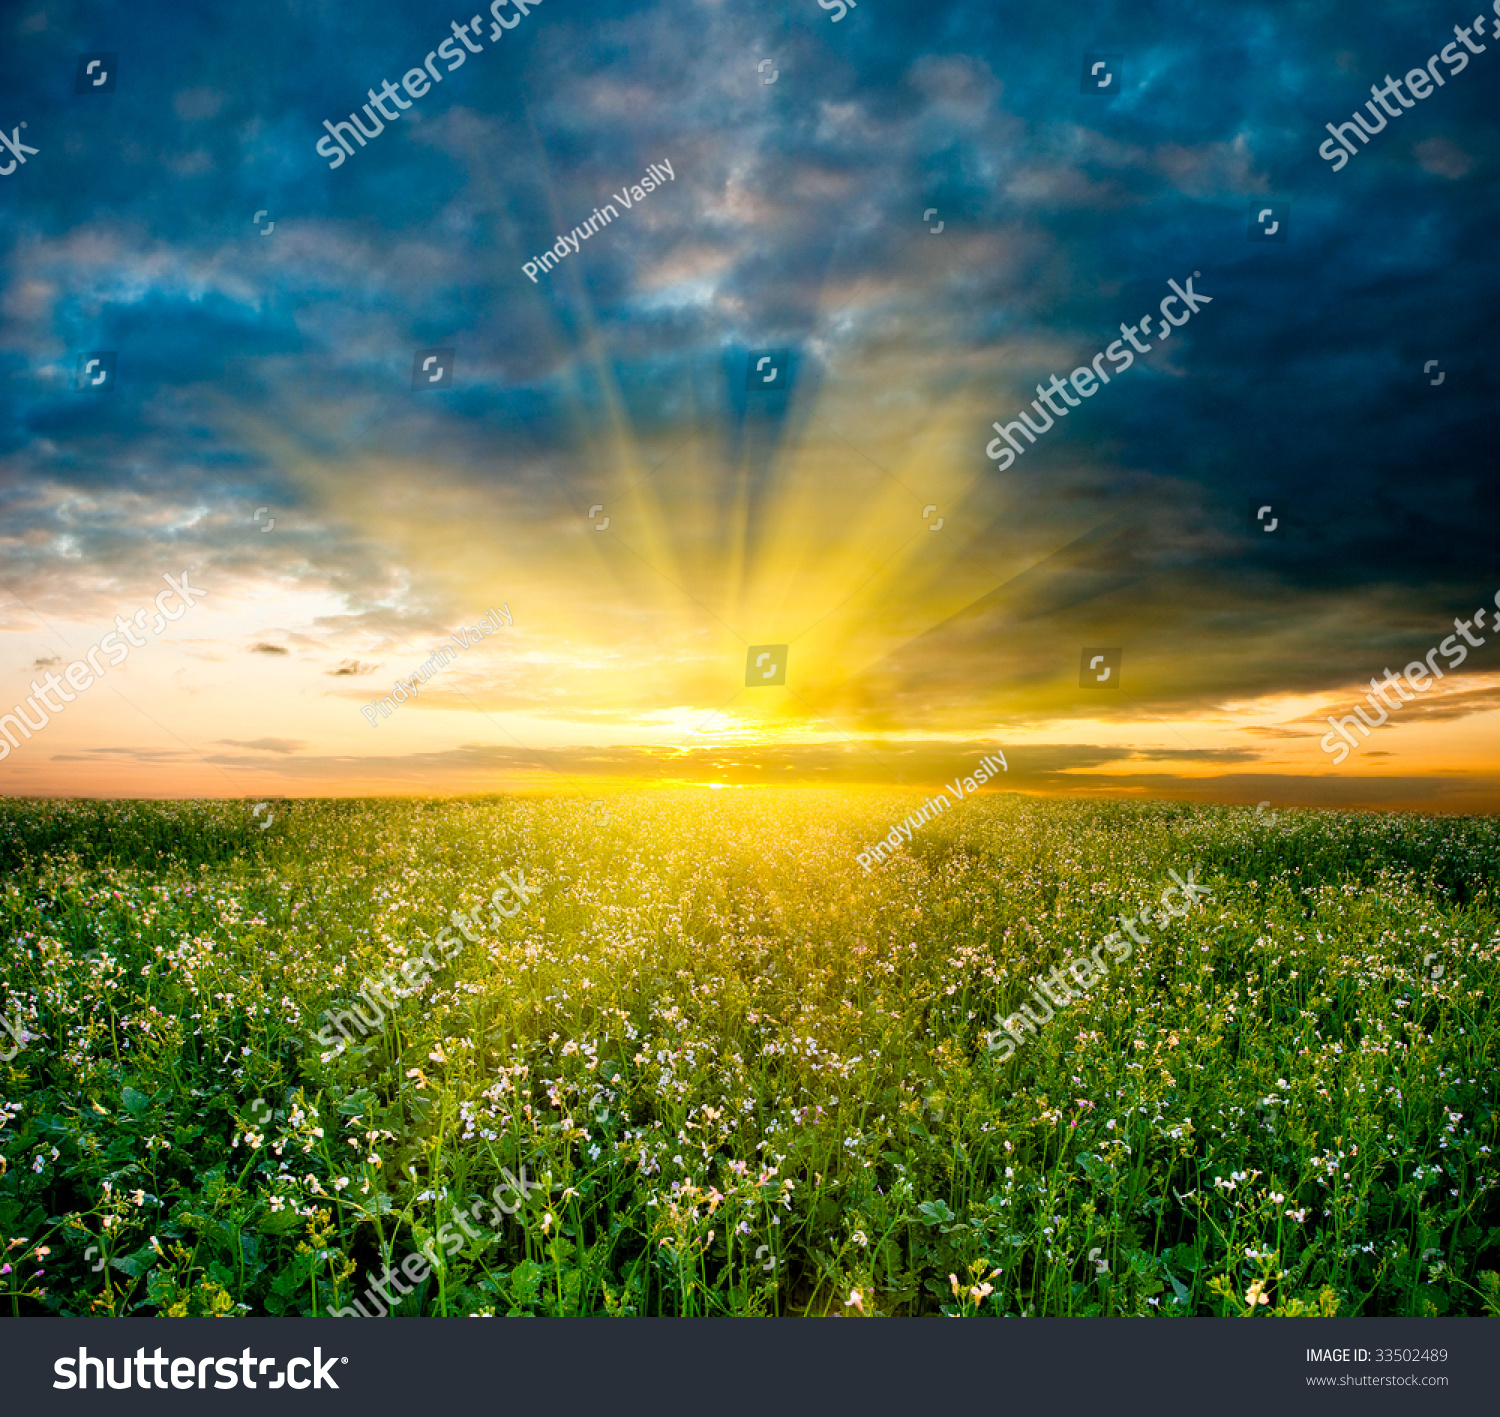 Sunset In The Field With White Flowers Ez Canvas